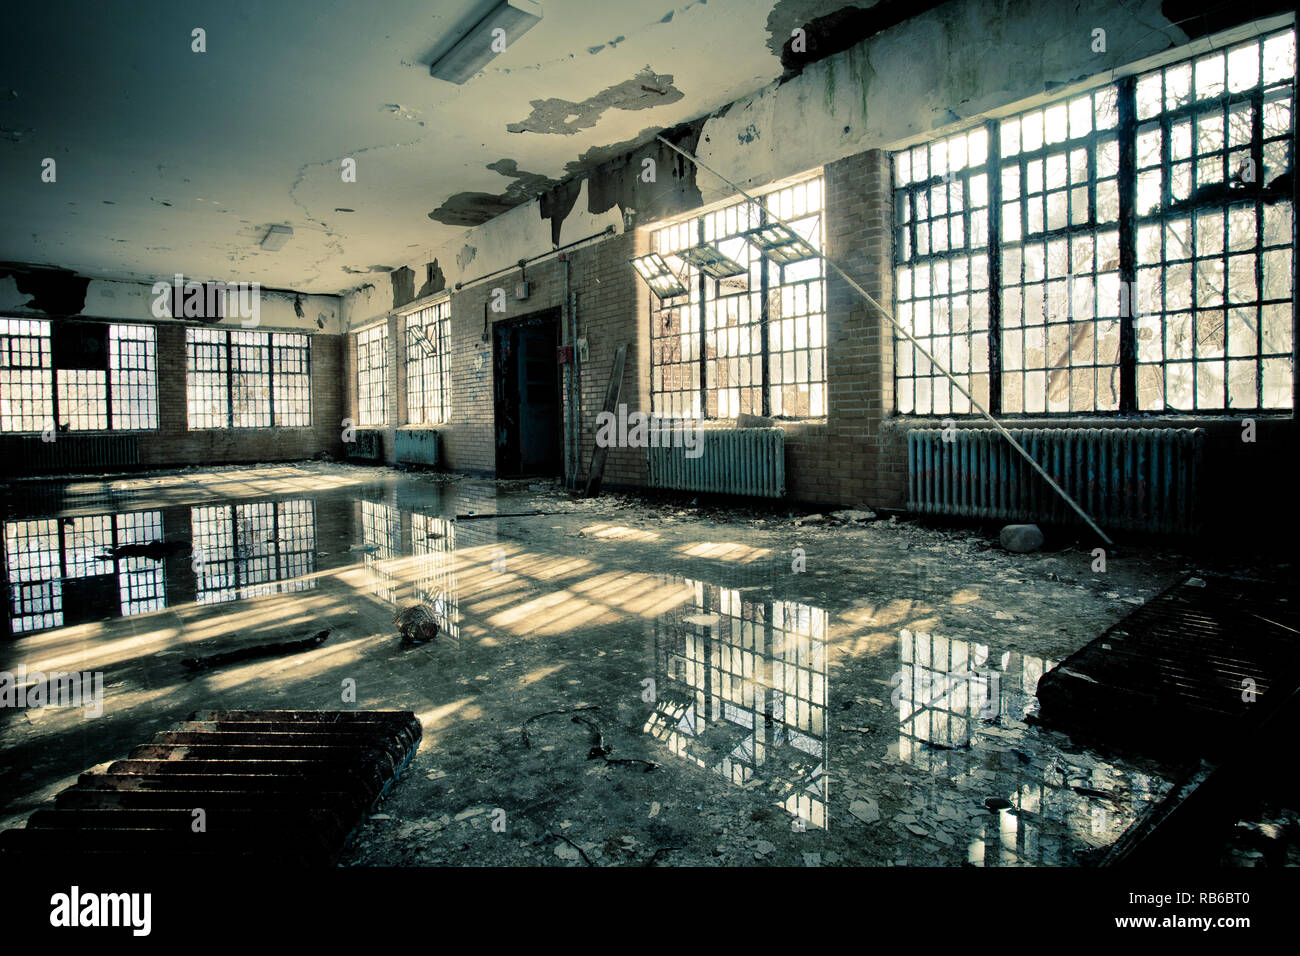 Interior of abandoned mental hospital with broken windows and water flood on floor Stock Photo